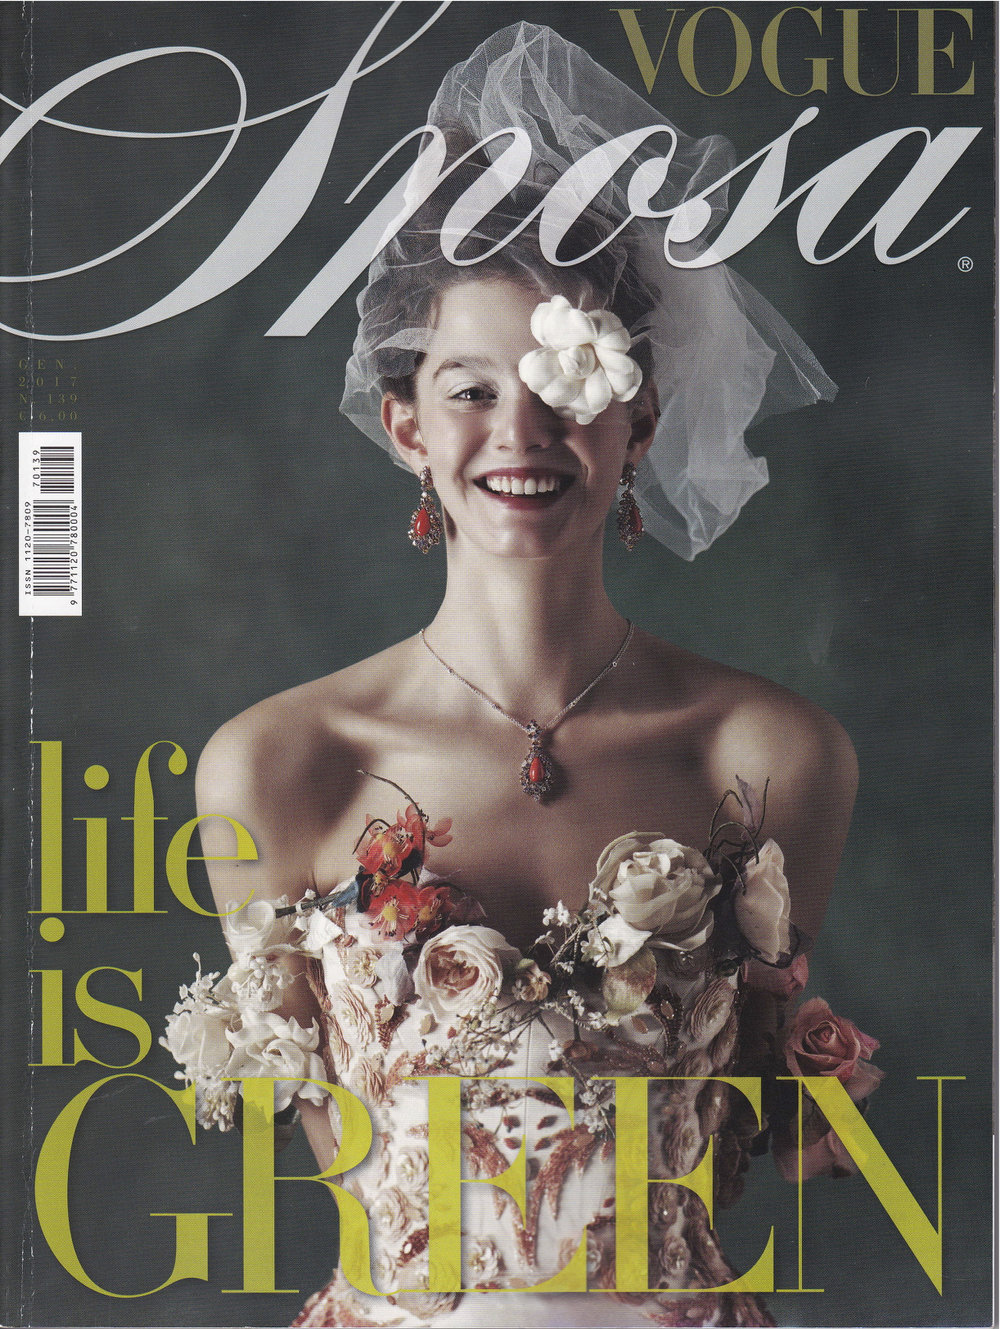 170130 Vogue Sposa Cover JPEG.jpg